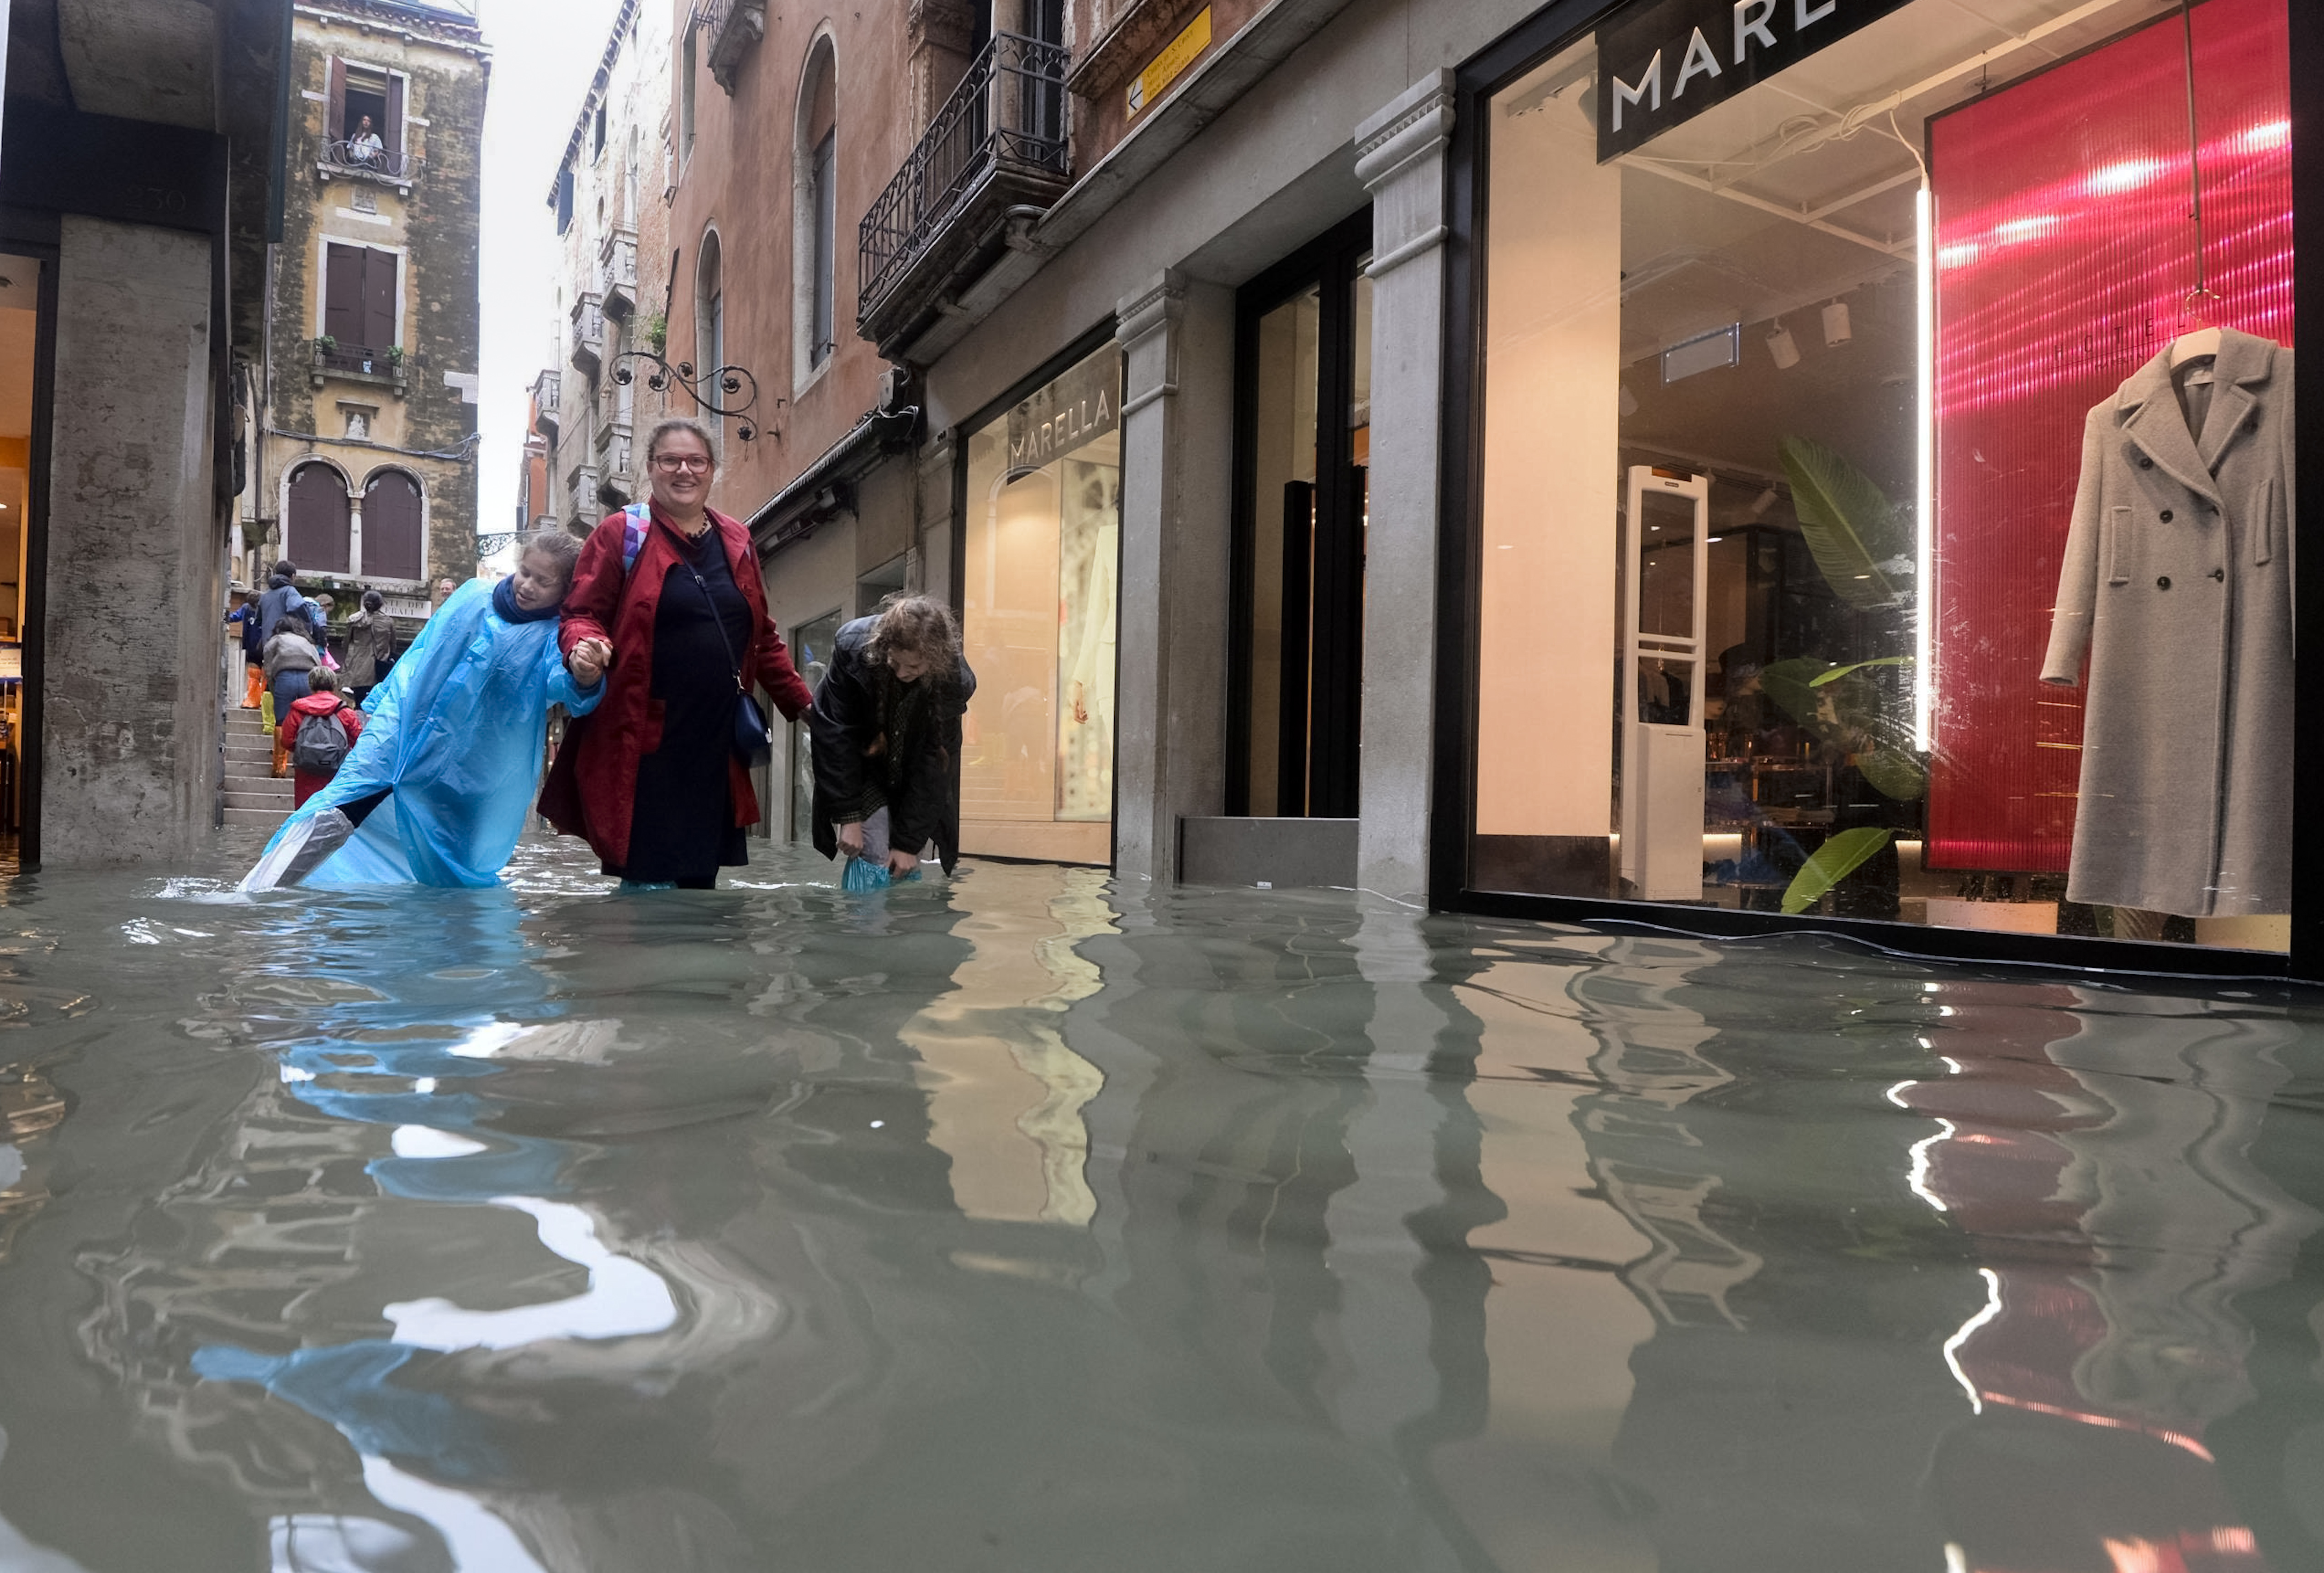 People walk in a flooded street of Venice, Italy, Monday, Oct. 29, 2018, as, according to city officials, 70 percent of the lagoon city has been flooded by waters rising 156 centimeters (more than 61.41 inches) above sea level. Venice frequently floods when high winds push in water from the lagoon, but Monday's levels are exceptional. (Andrea Merola/ANSA via AP)